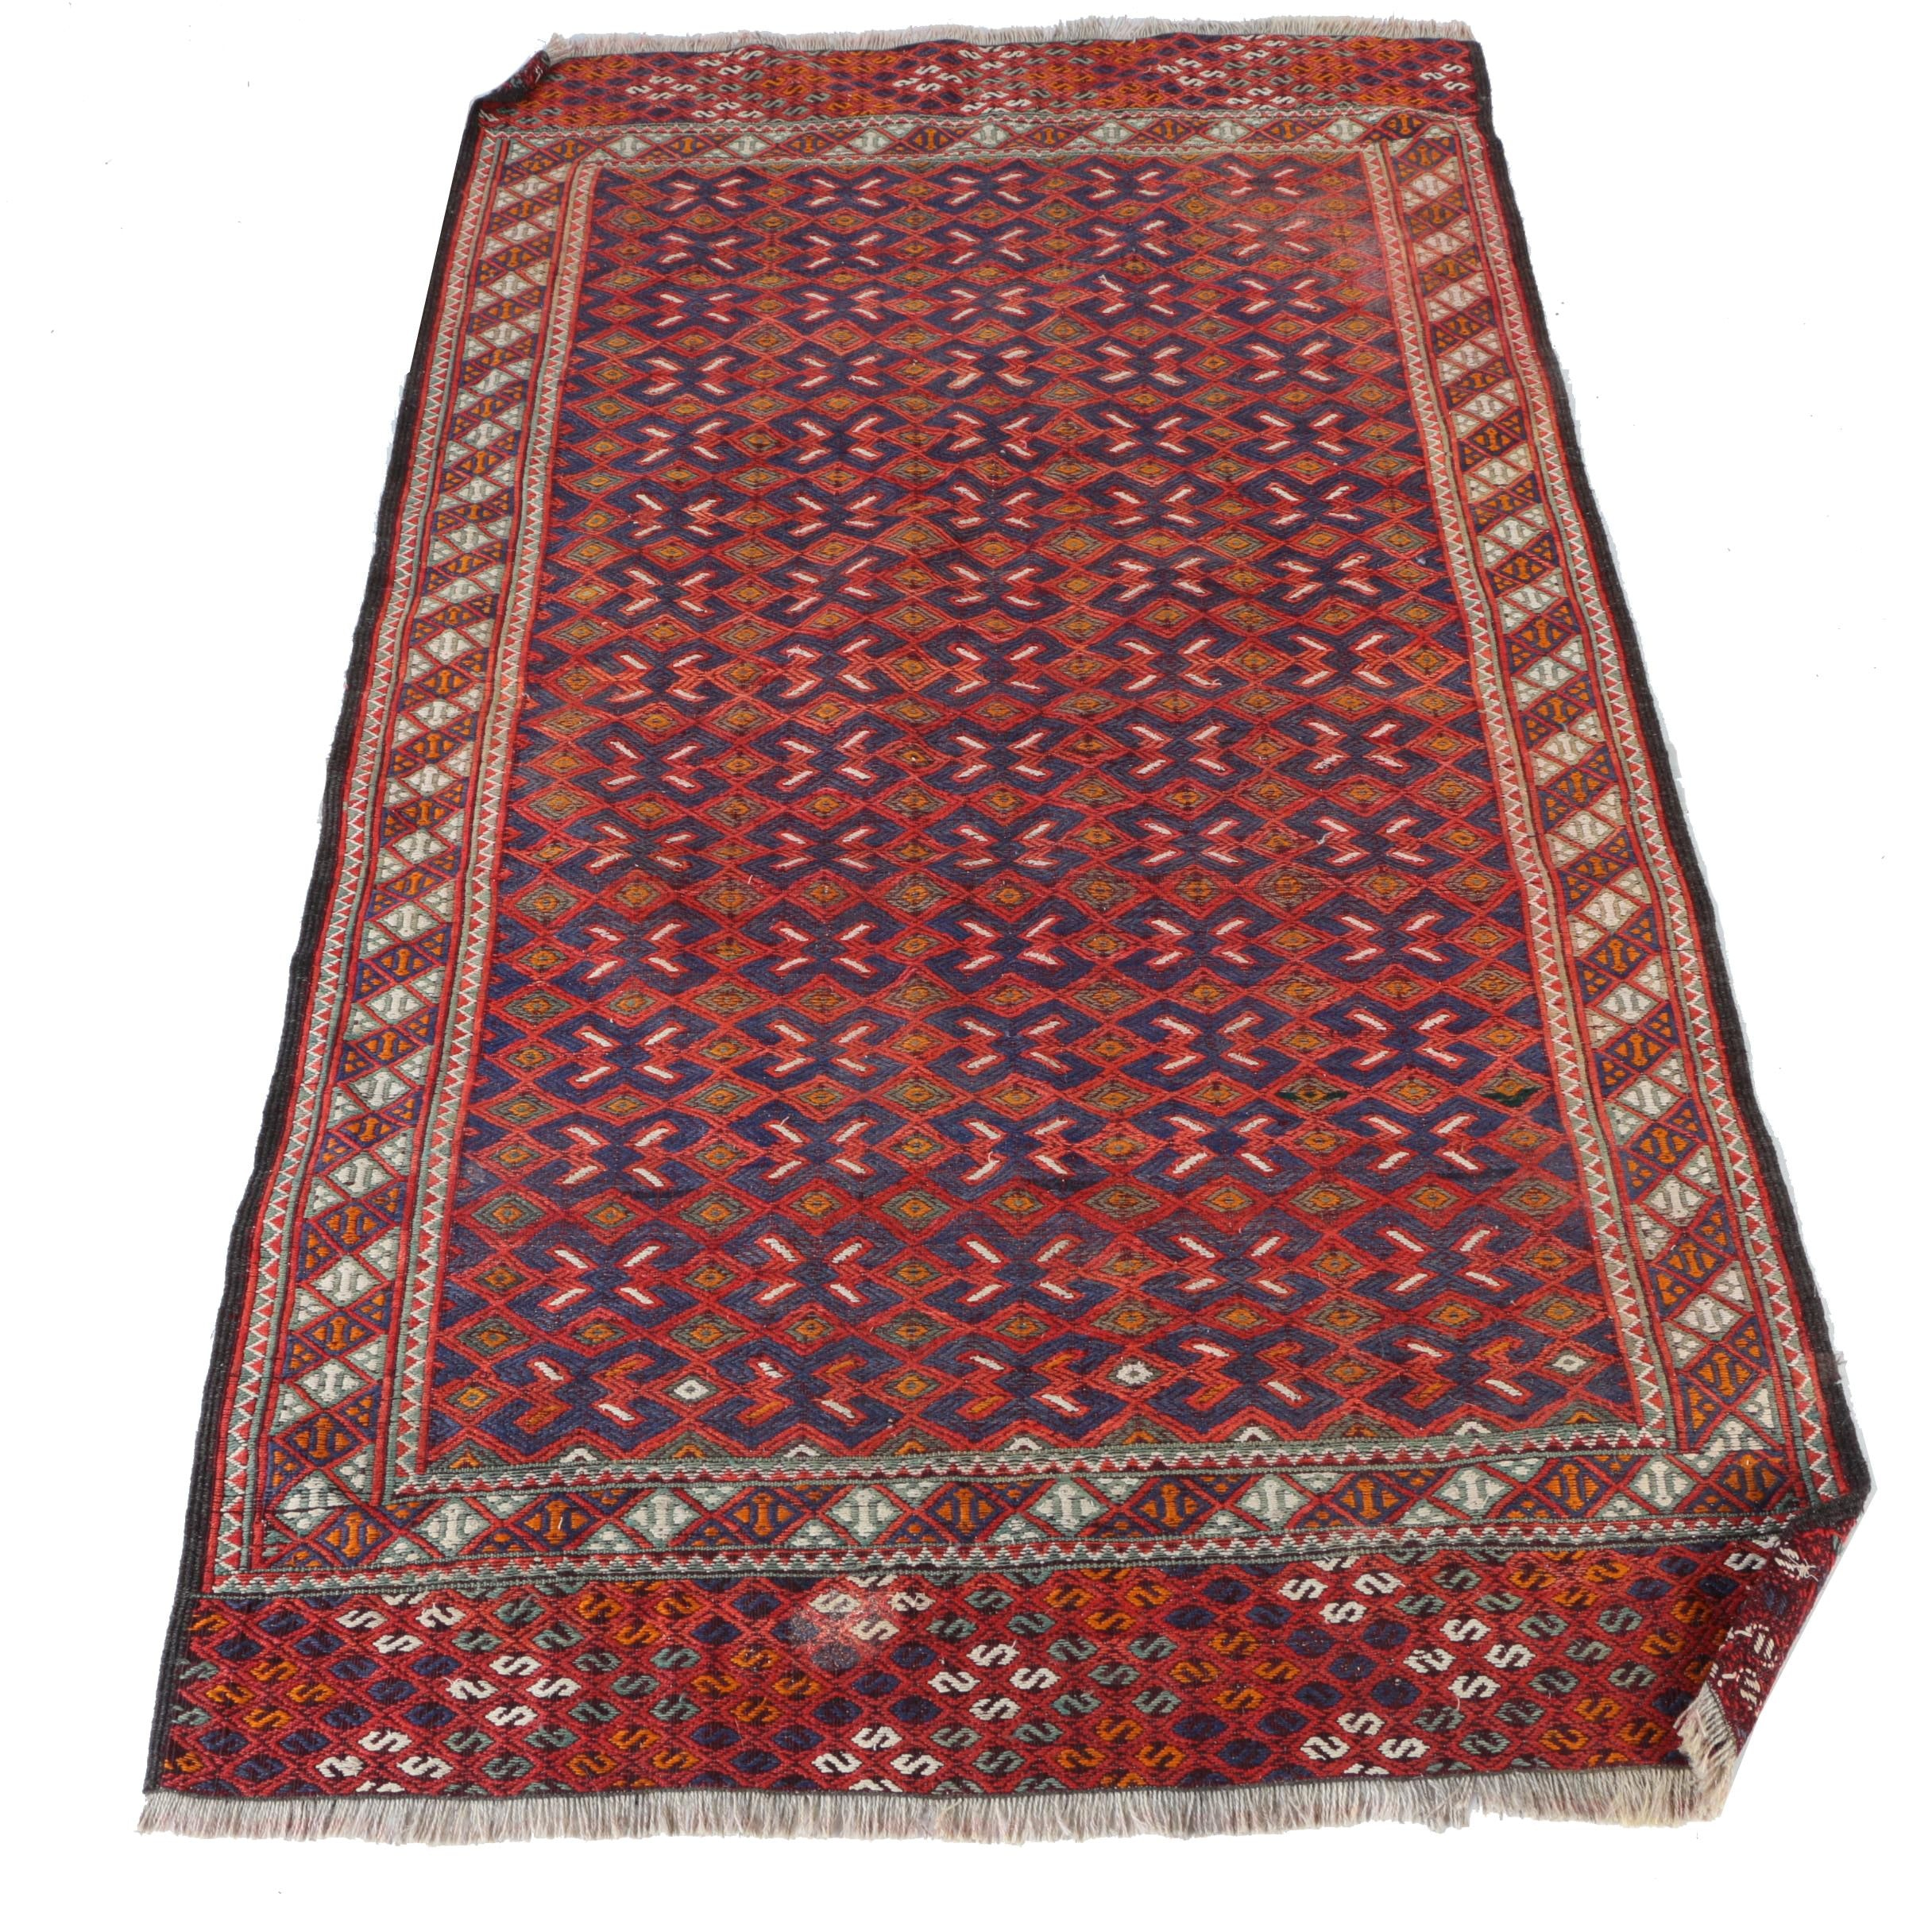 Handwoven and Embroidered Turkmen Wool Area Rug